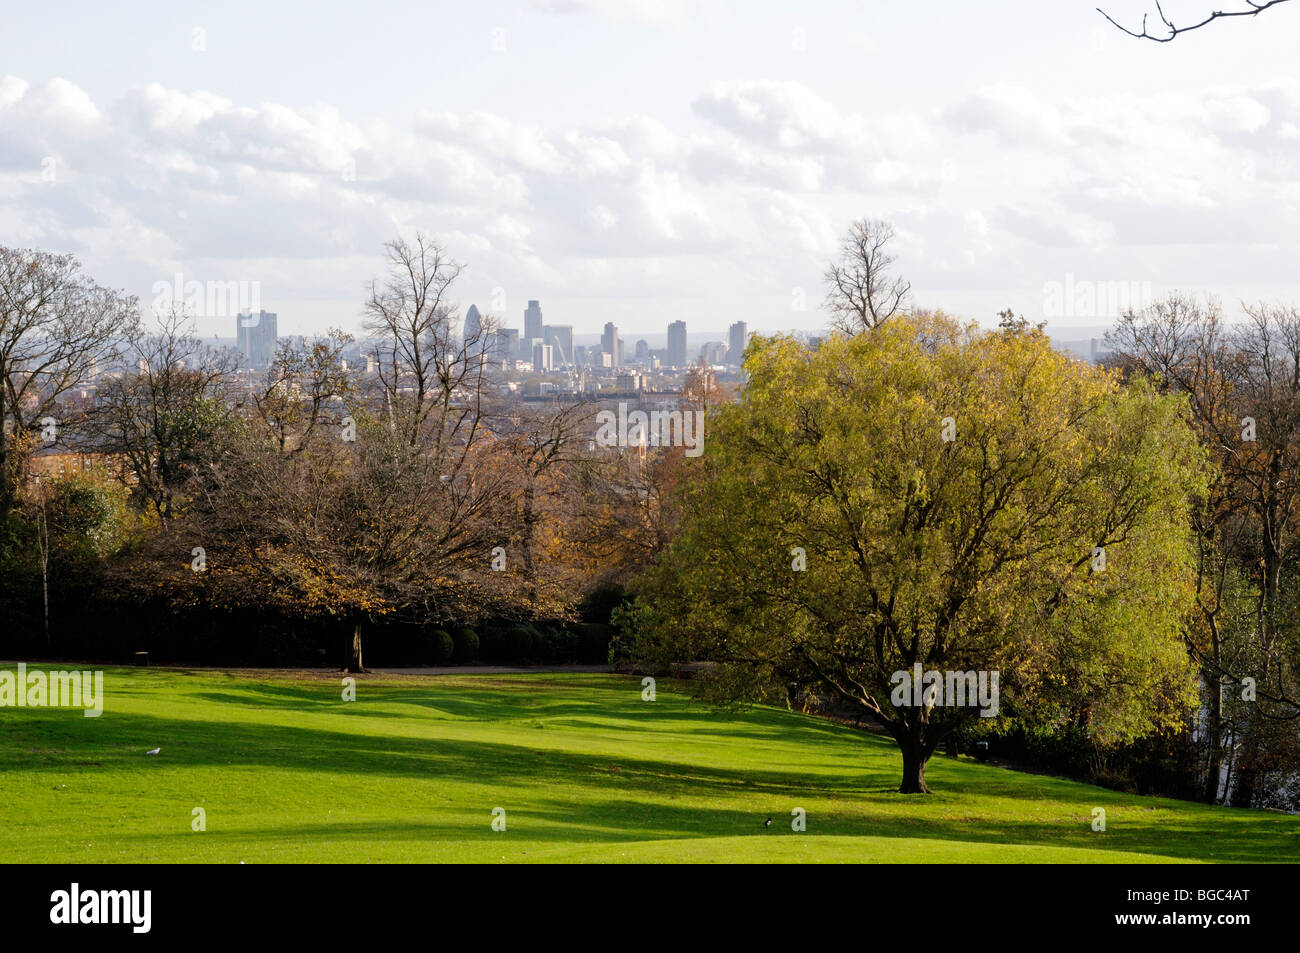 Waterlow Park Highgate looking towards Central London England UK Stock Photo